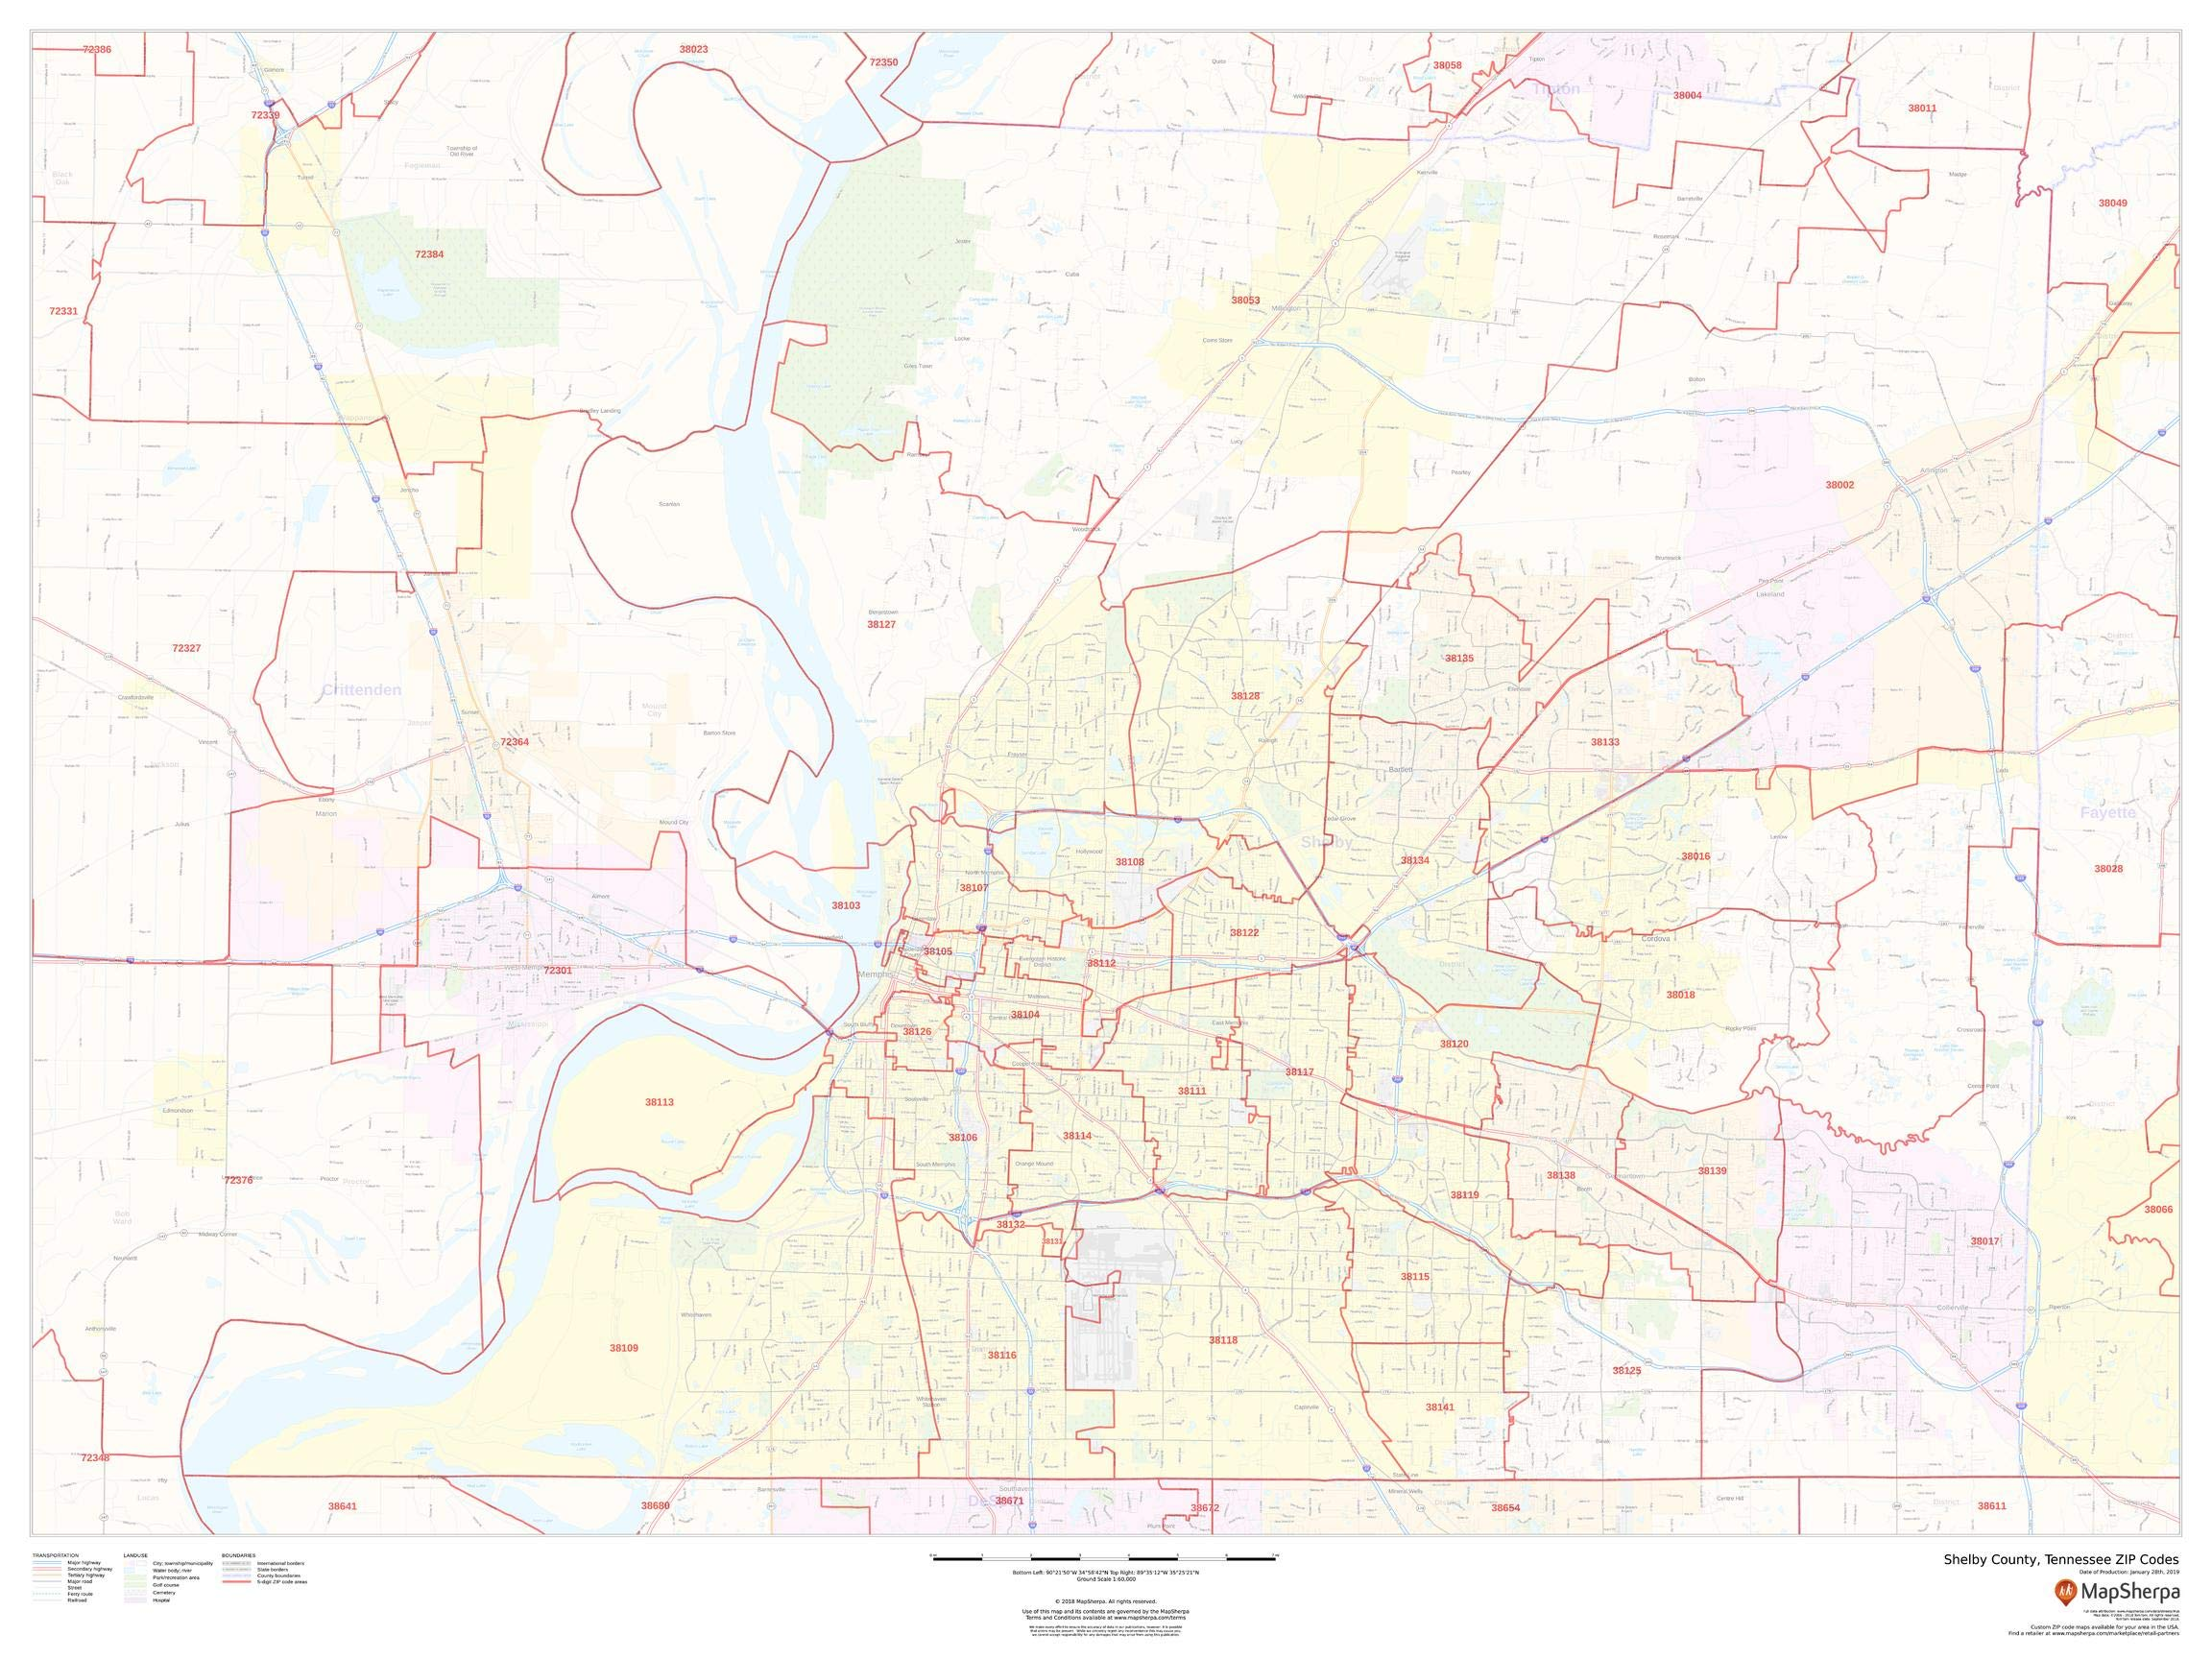 Shelby County, Tennessee Zip Codes - 48'' x 36'' Paper Wall Map